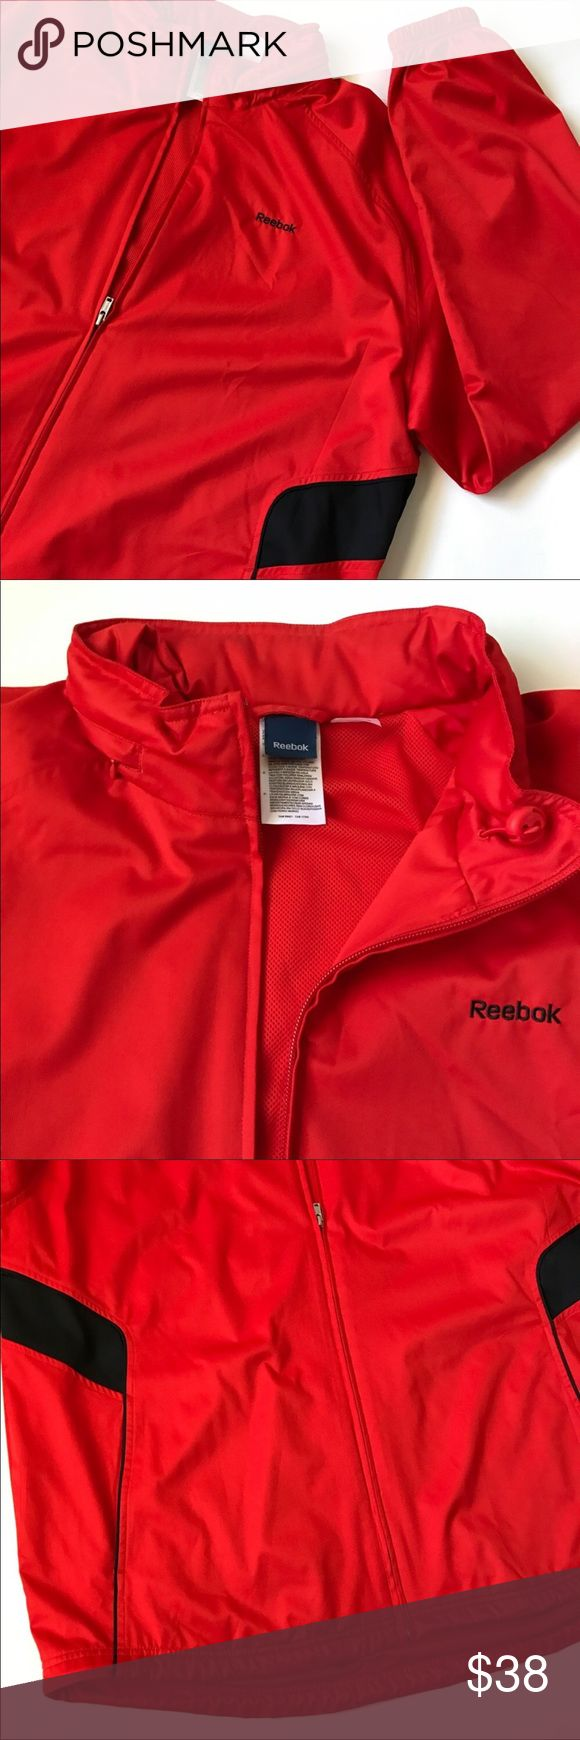 Men's reebok jacket Perfect for a warm, windy day. Perhaps a take along for your golf trip today. Blue panels above the pockets. Mesh lining. Hidden hood zipped inside the collar. Vintage style!  Color: Red orange Fabric: 100% Polyester  Size: 2XL Reebok Jackets & Coats Windbreakers